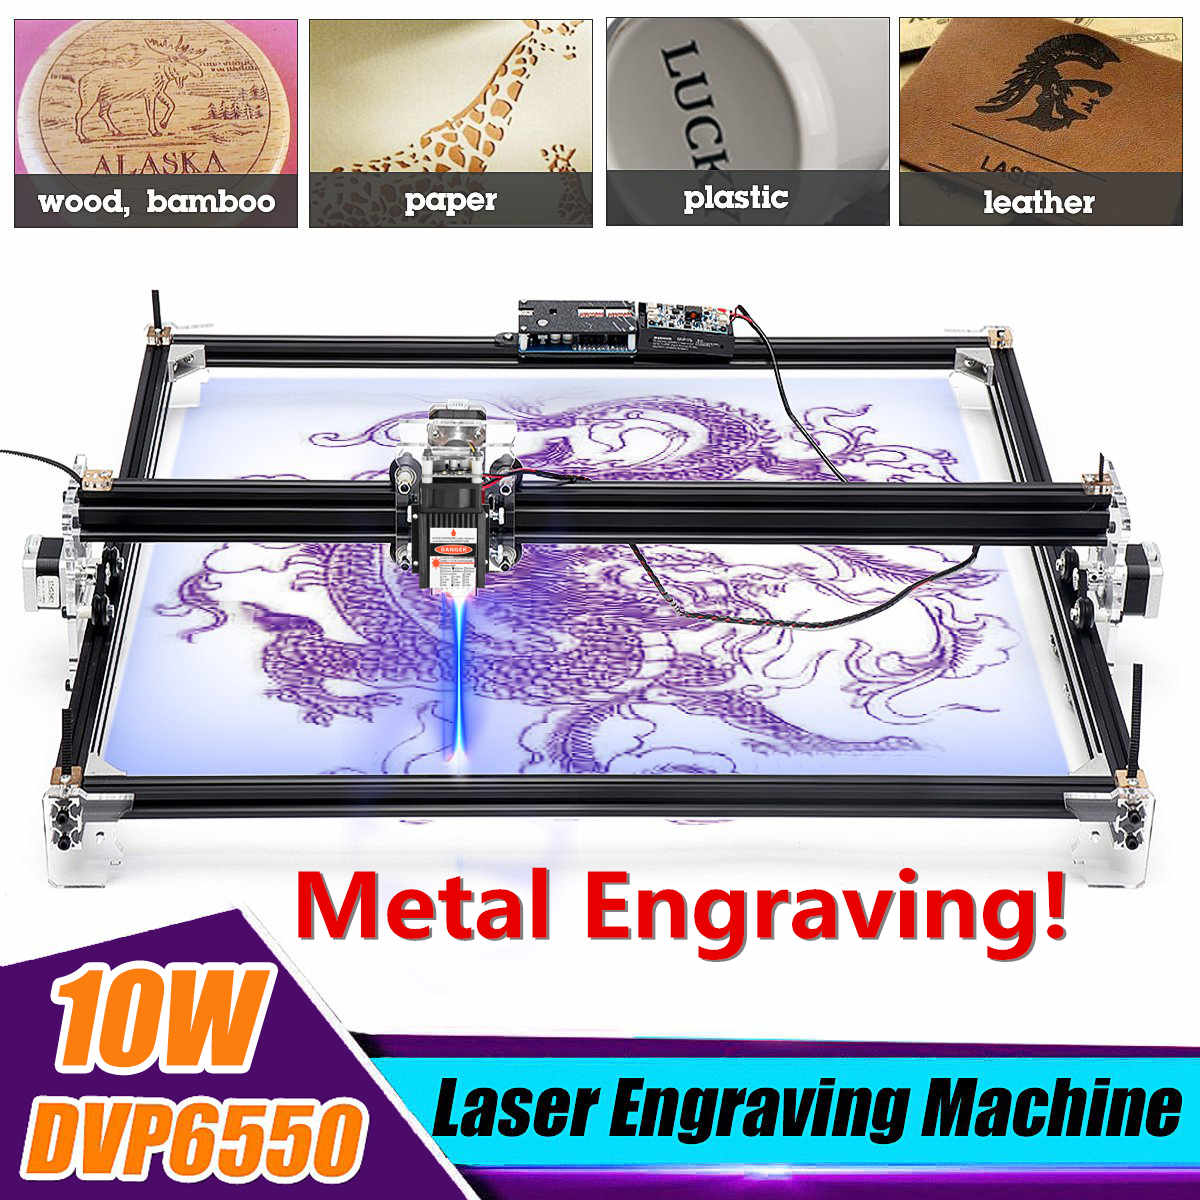 12V 5500mW 10000mW Metal Mini CNC Laser Engraver Engraving Machine 2Axis DIY Home Desktop Wood Router/Cutter/Printer Tool